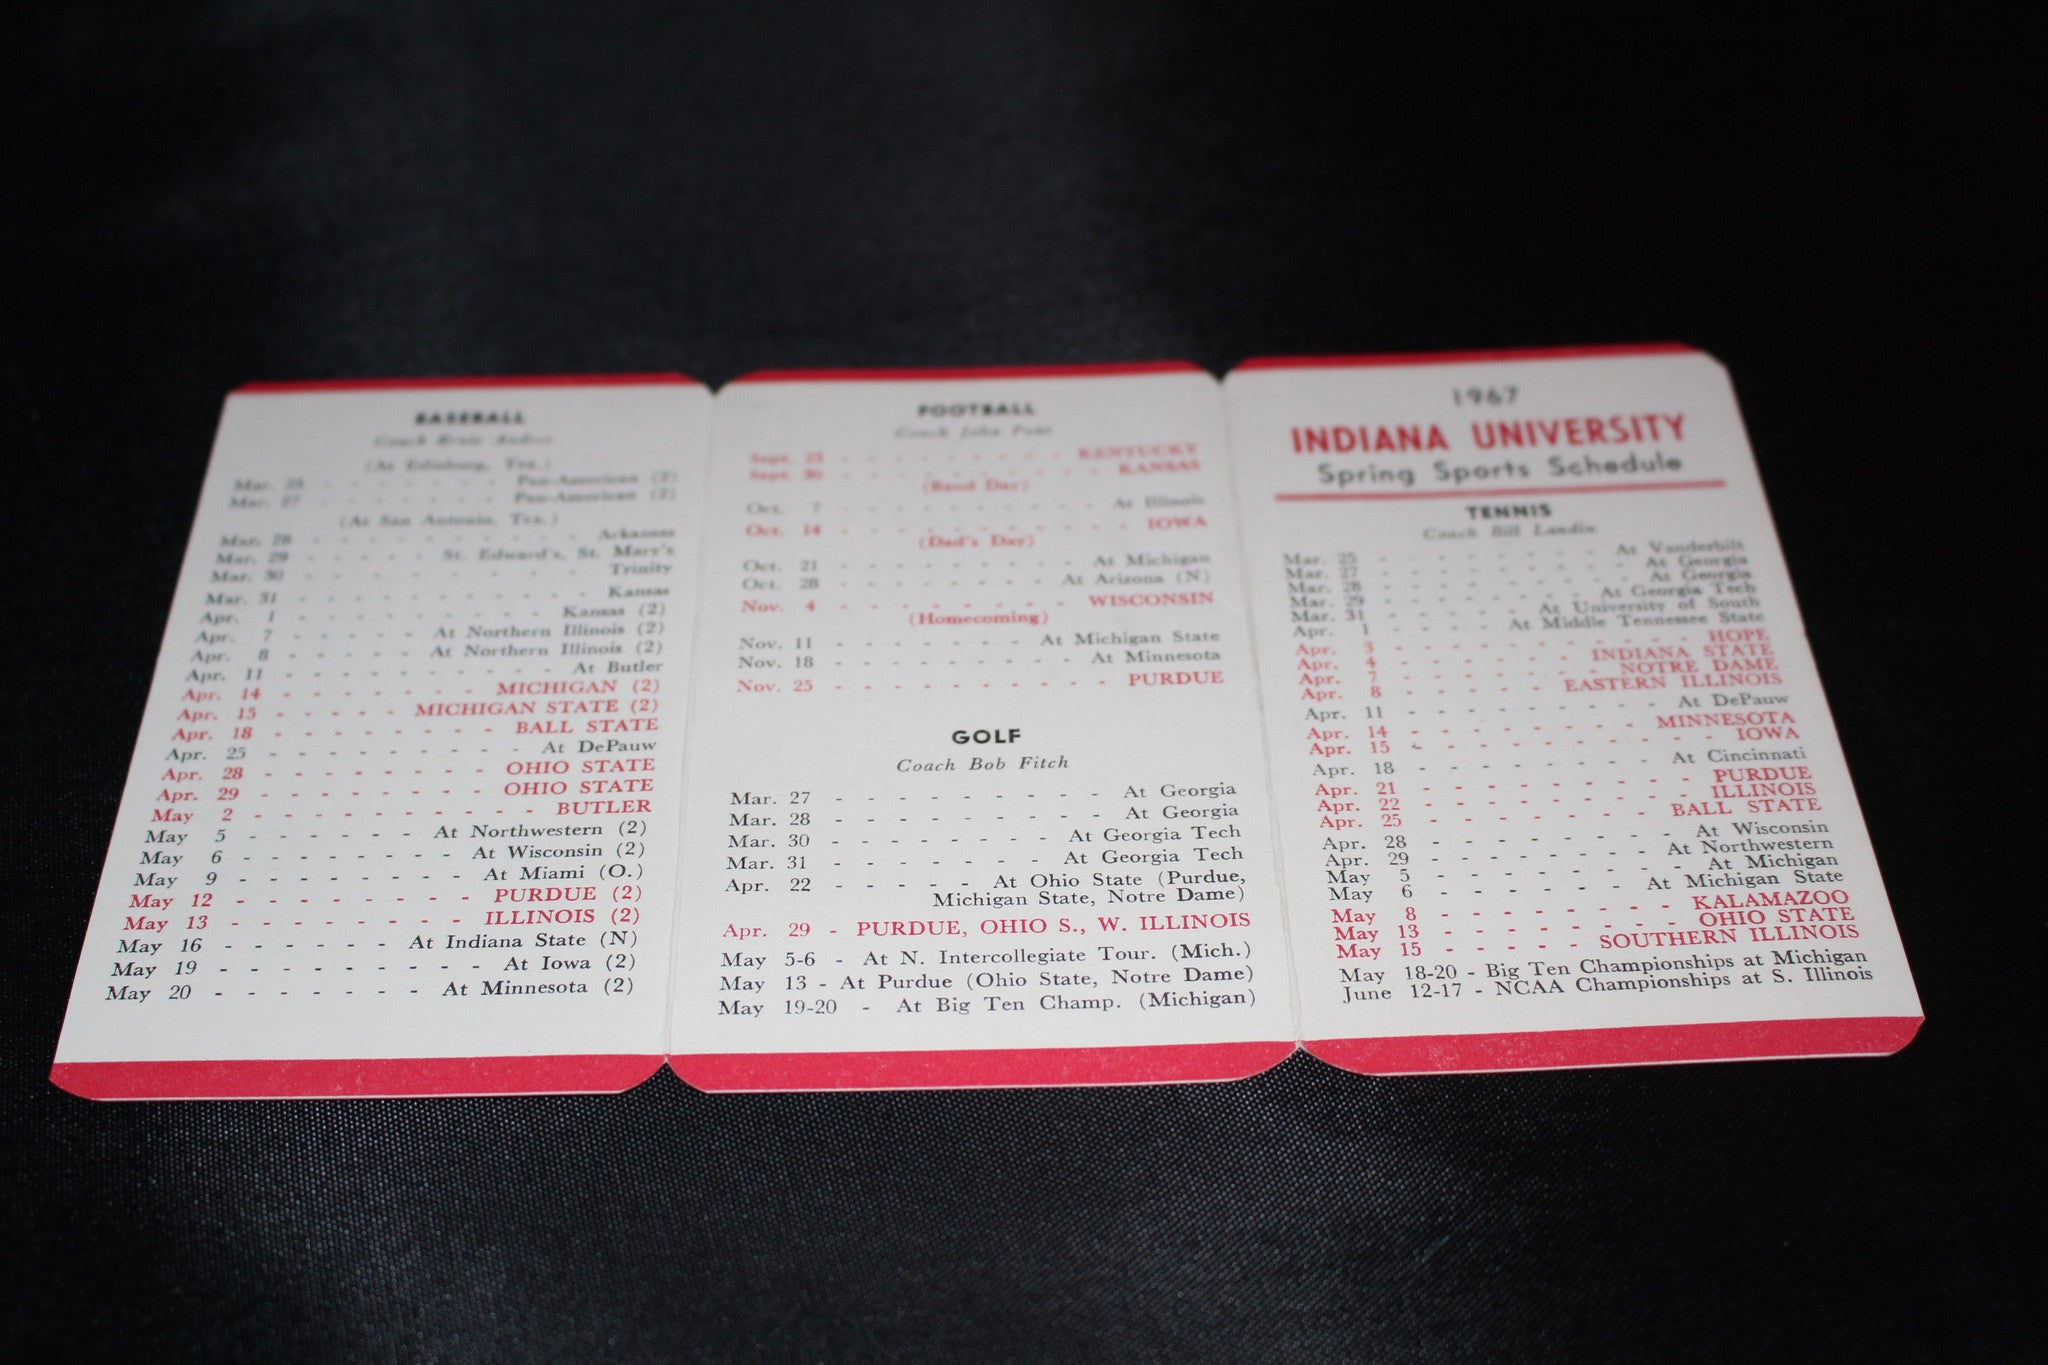 1967 Indiana University Spring Sports Schedule - Vintage Indy Sports